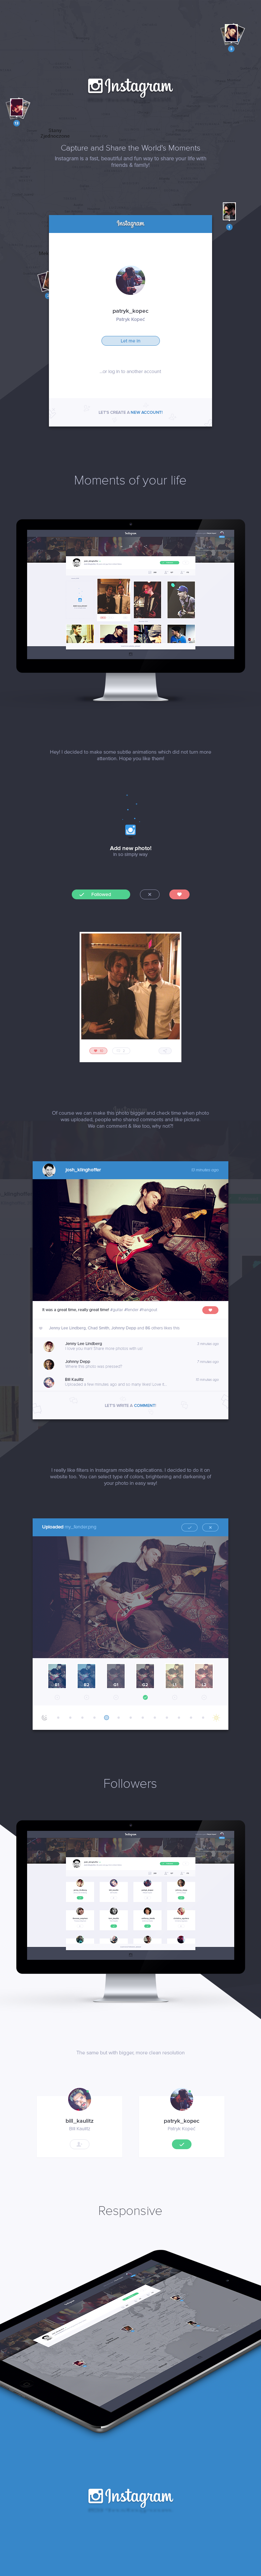 Instagram - web redesign by encore13